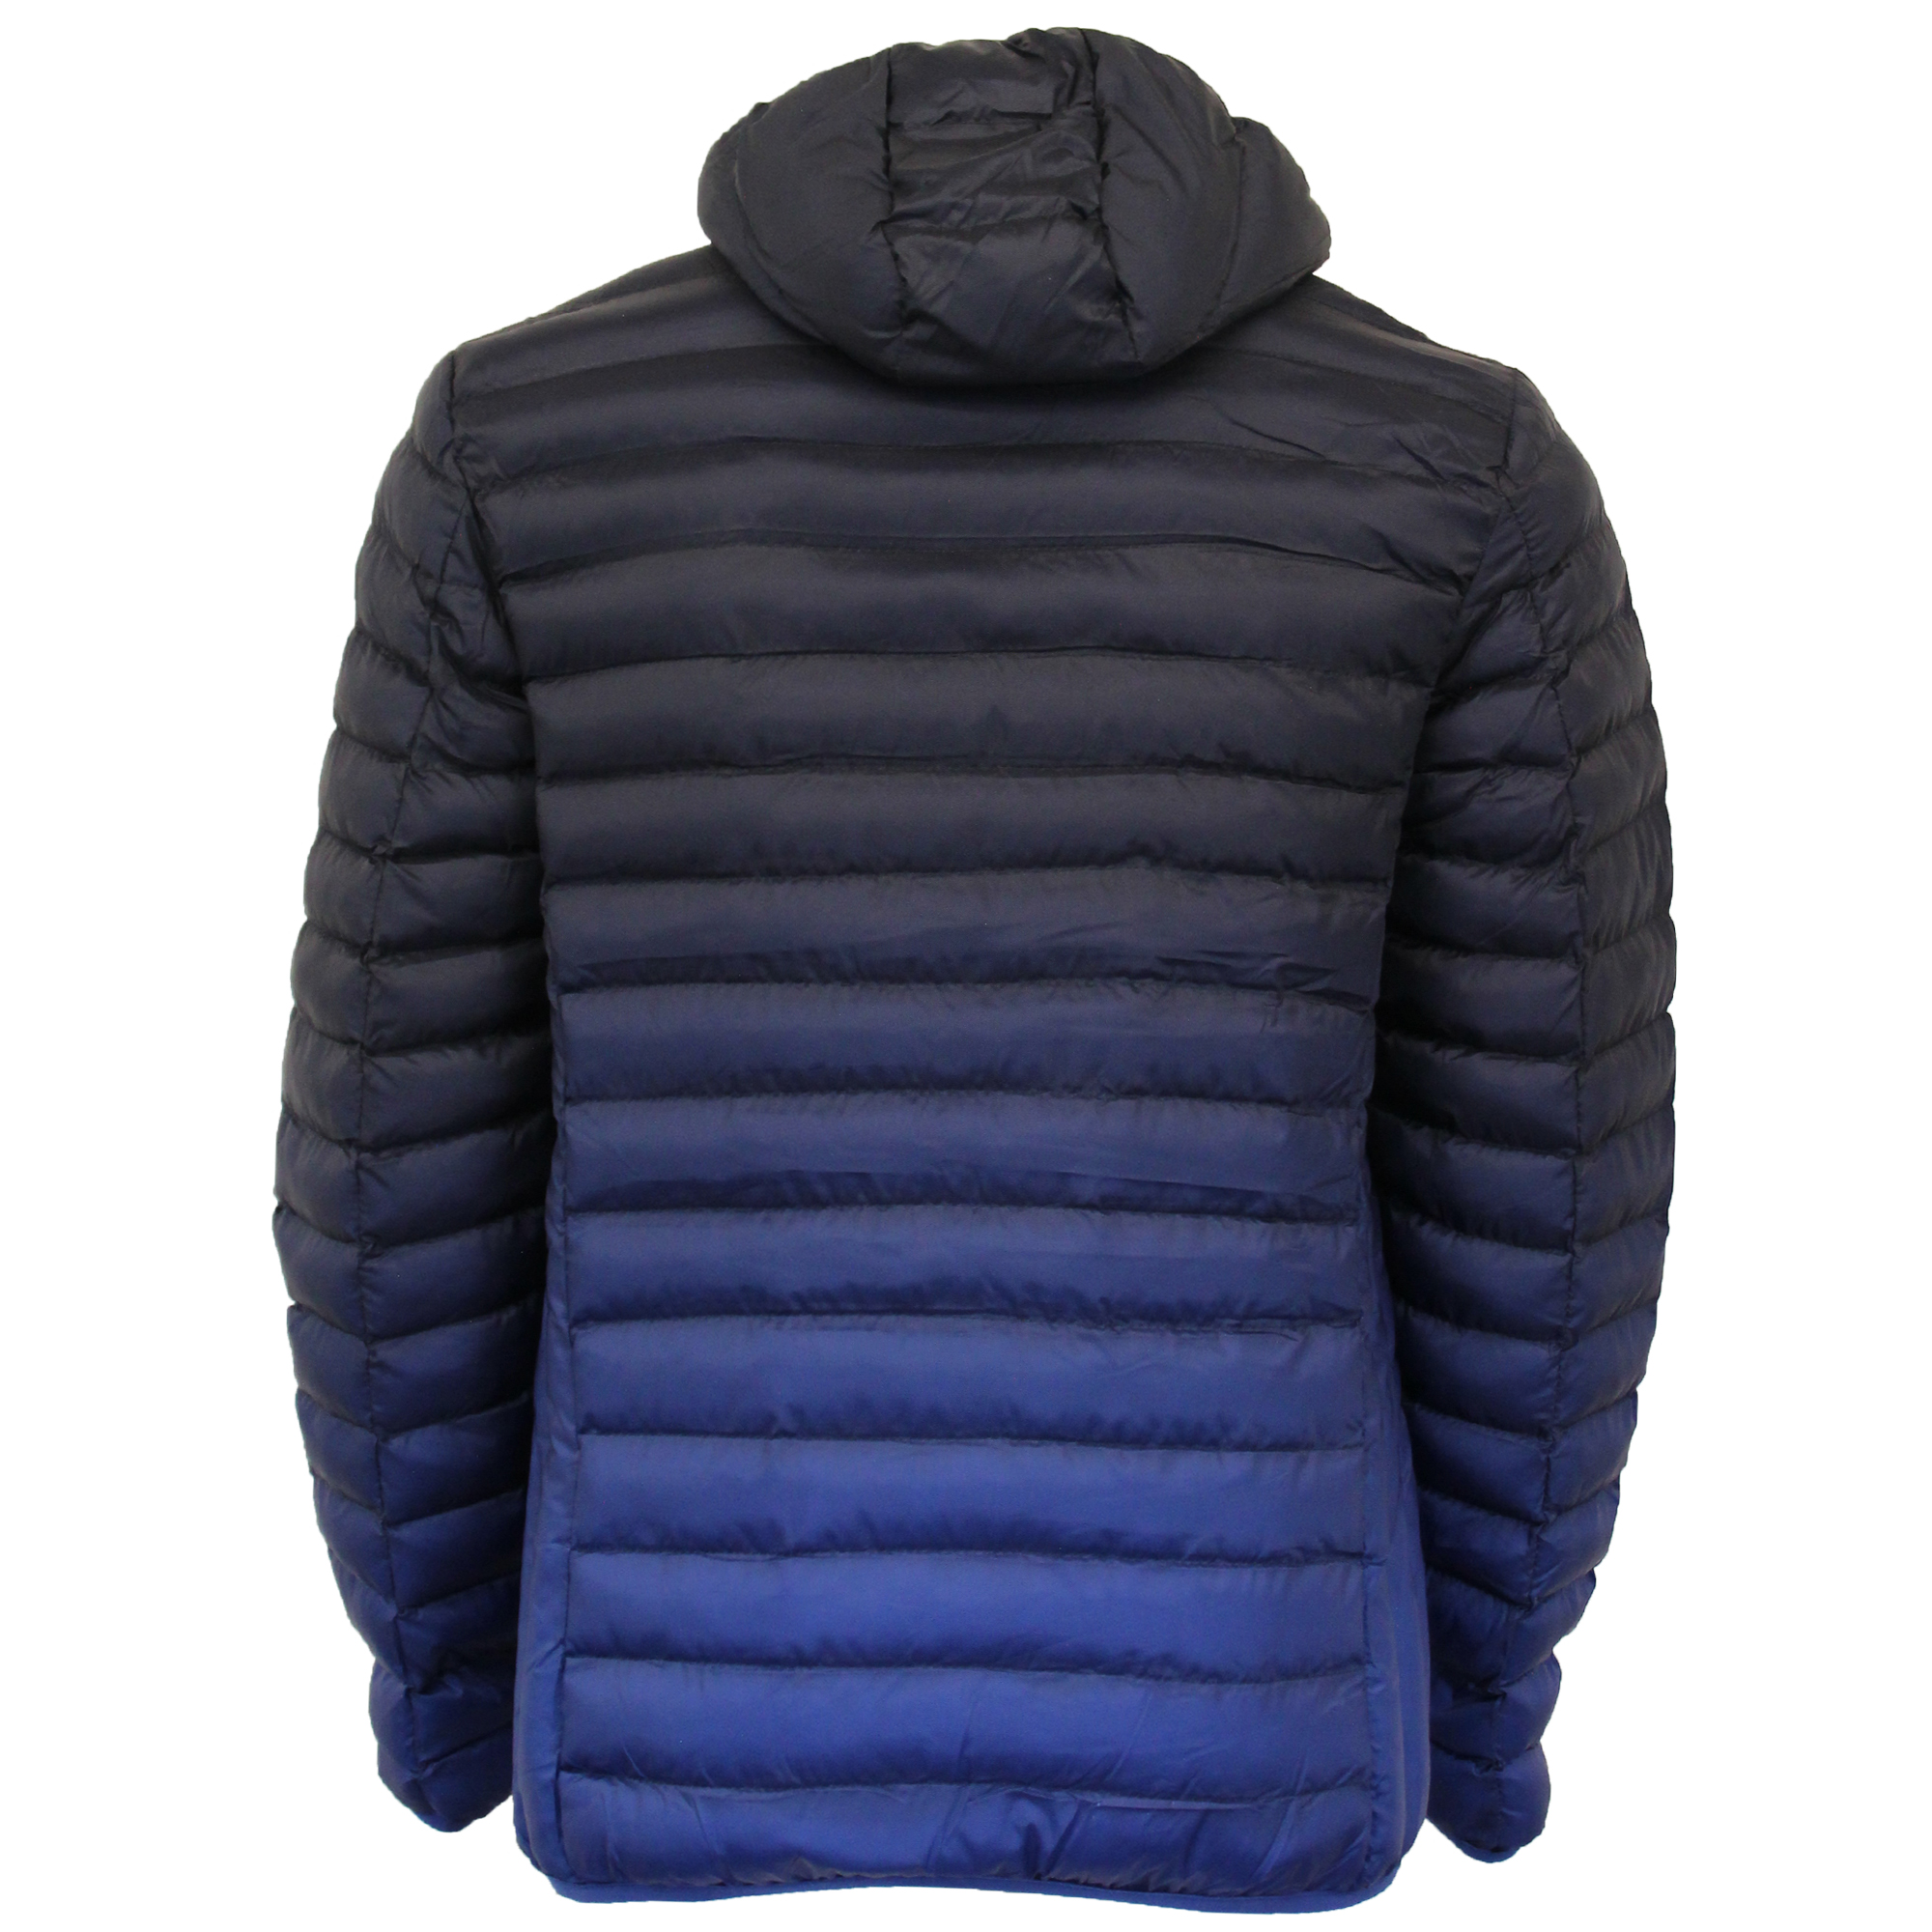 Mens-Jacket-Crosshatch-Hooded-Padded-Quilted-Two-Tone-FADEDOWN-Lined-Winter-New thumbnail 17